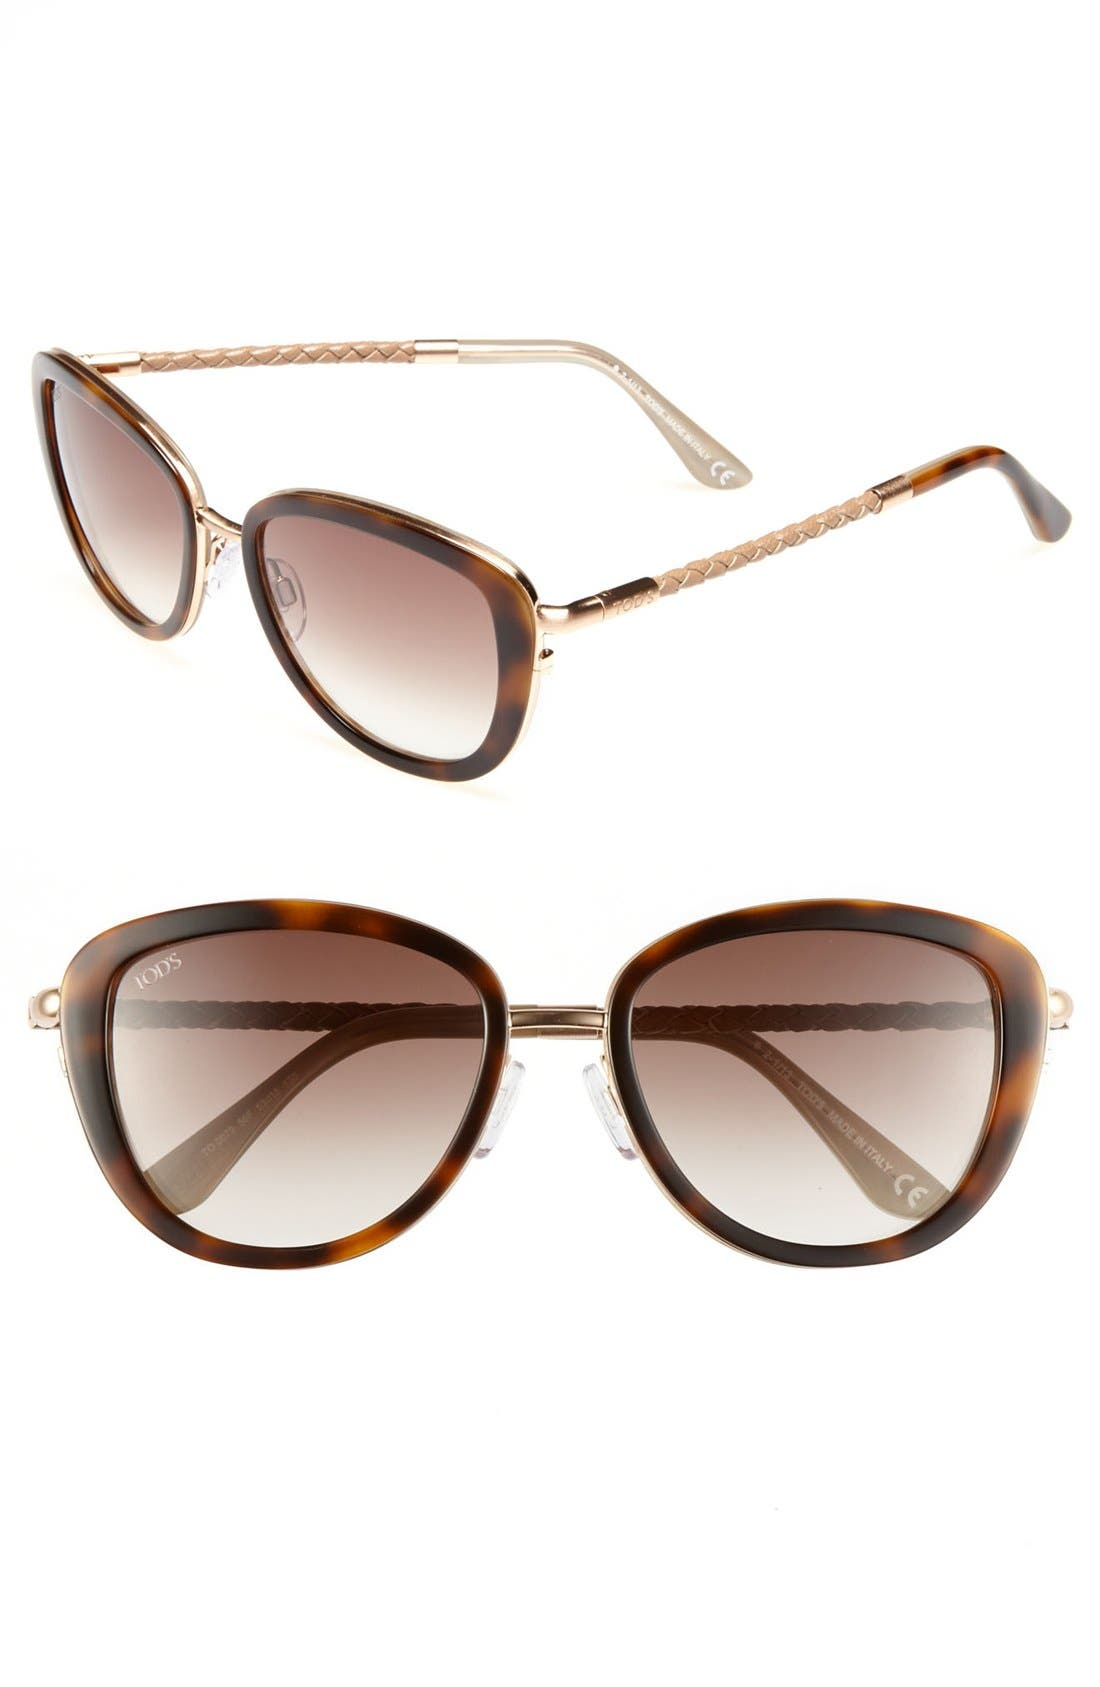 Alternate Image 1 Selected - Tod's 53mm Woven Leather Temple Sunglasses